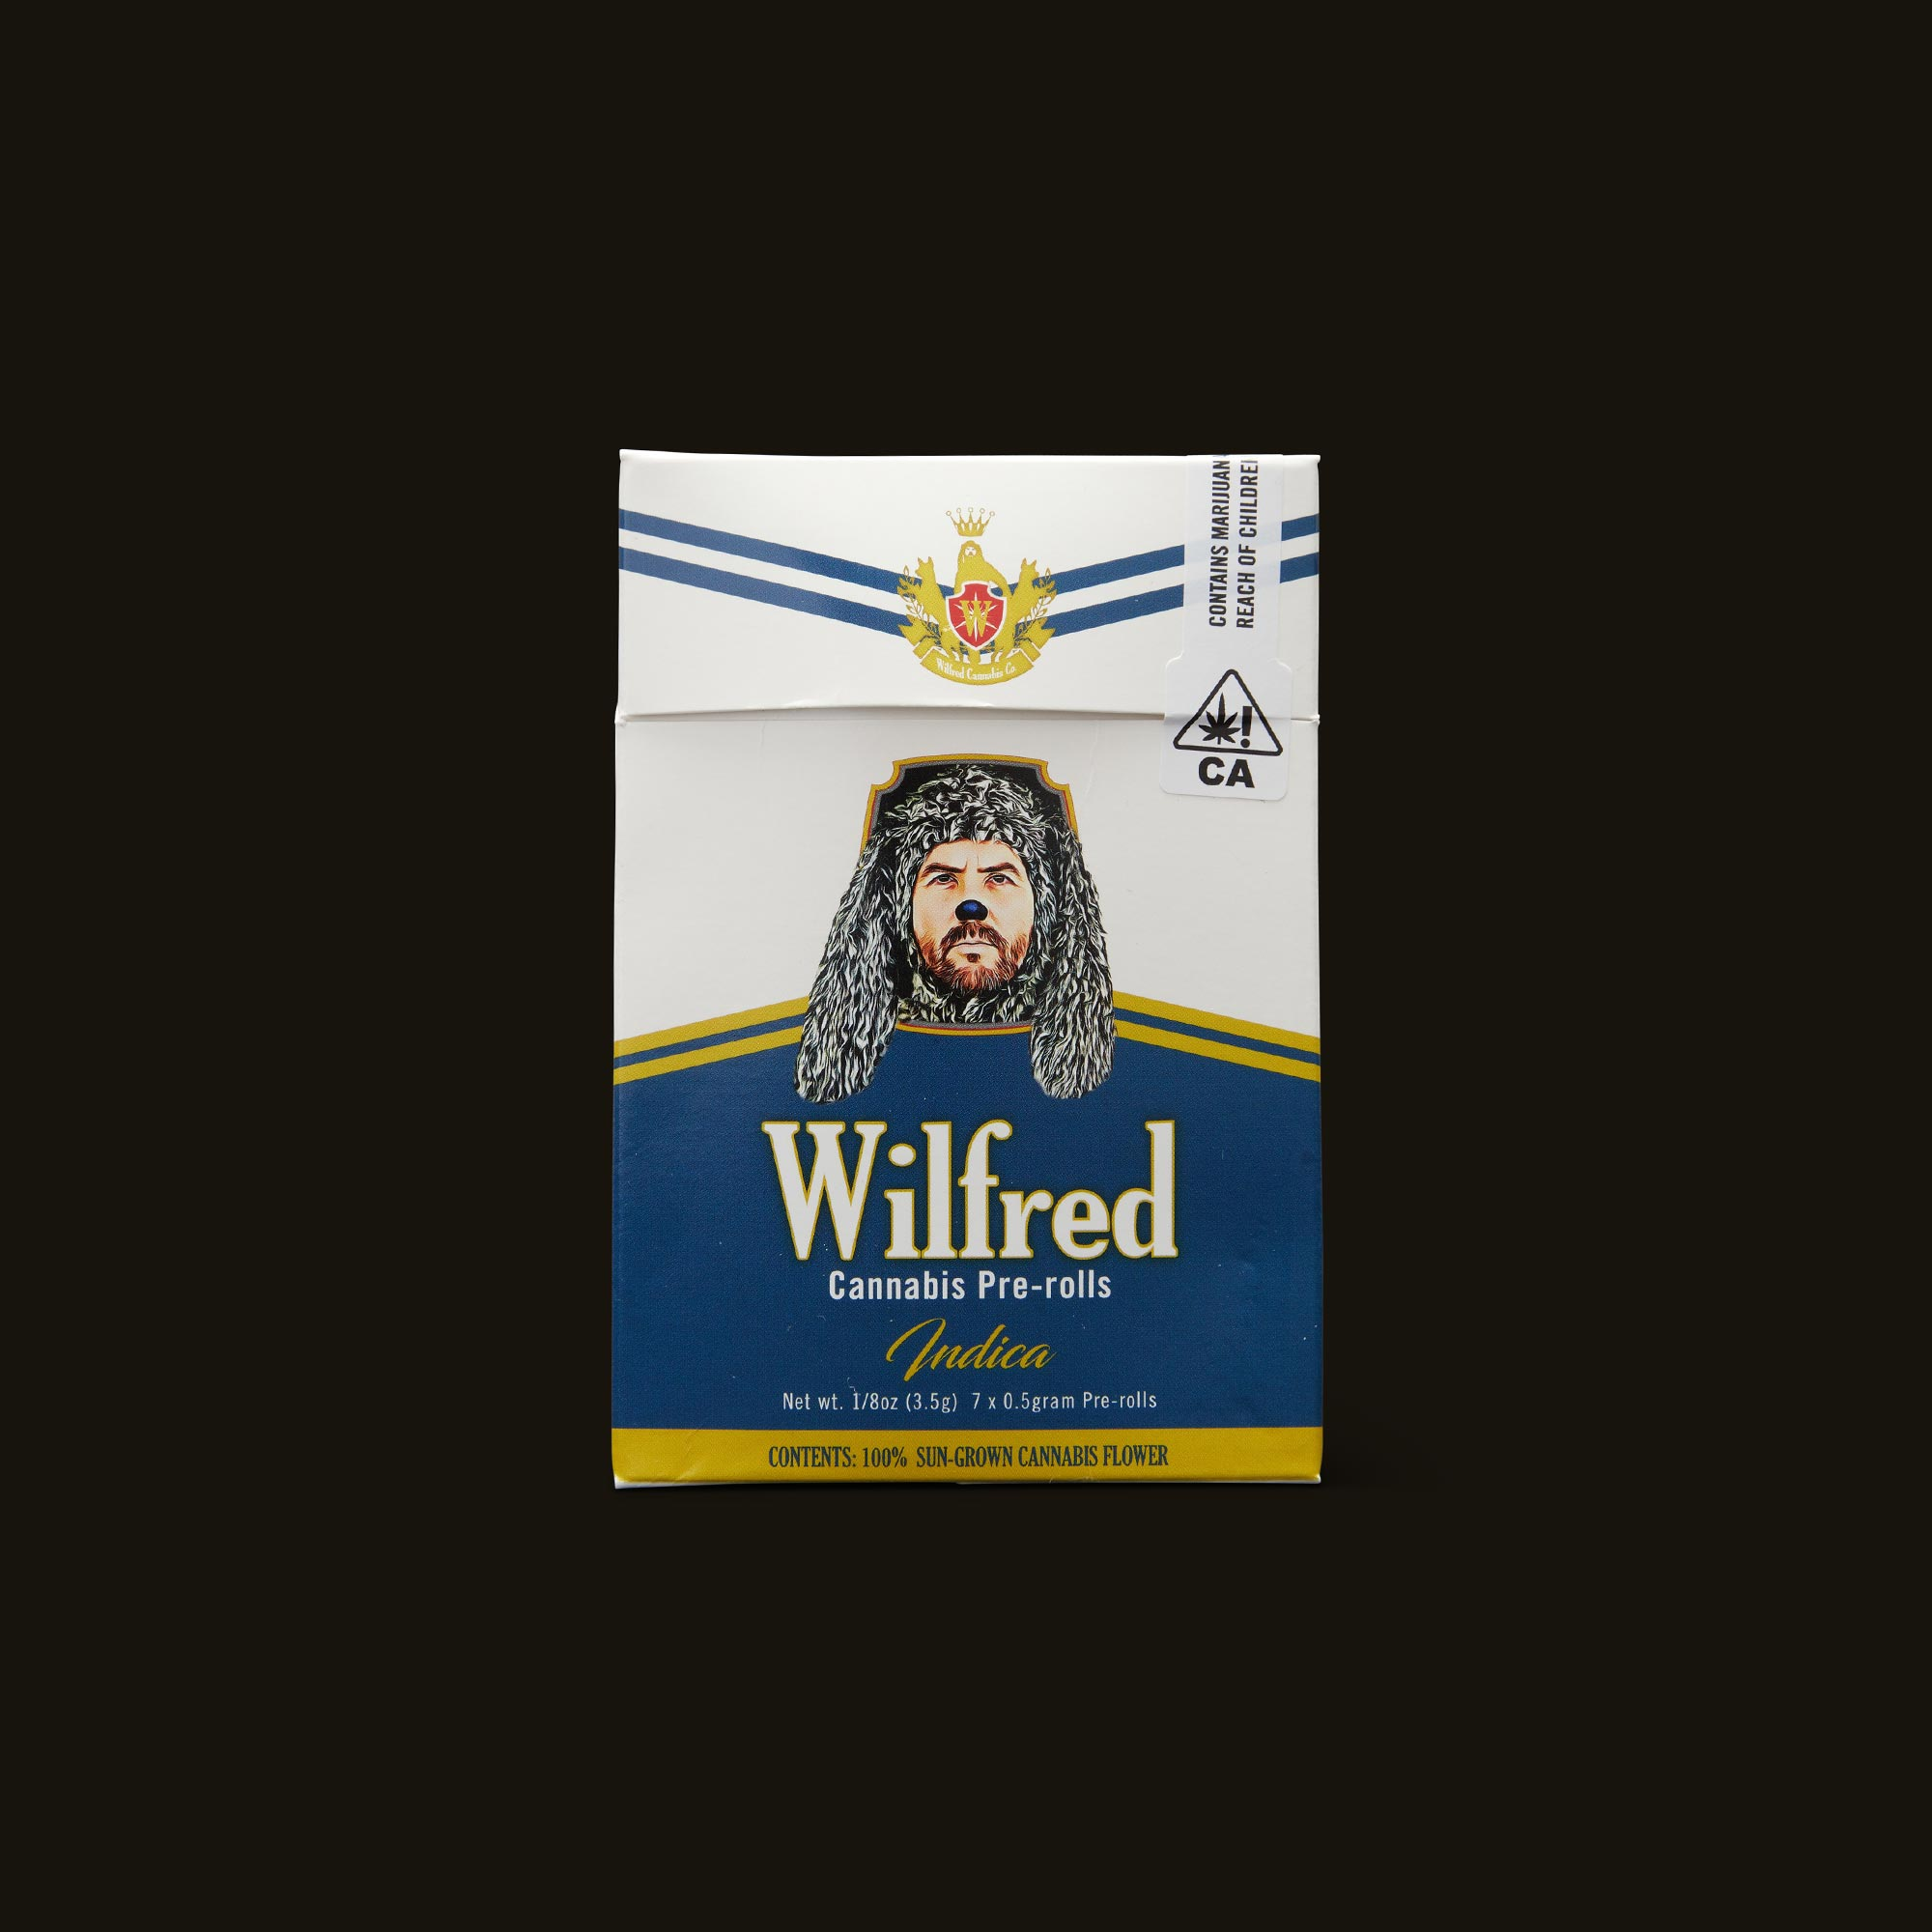 Wilfred Cannabis Indica Pre-Rolls Front Packaging